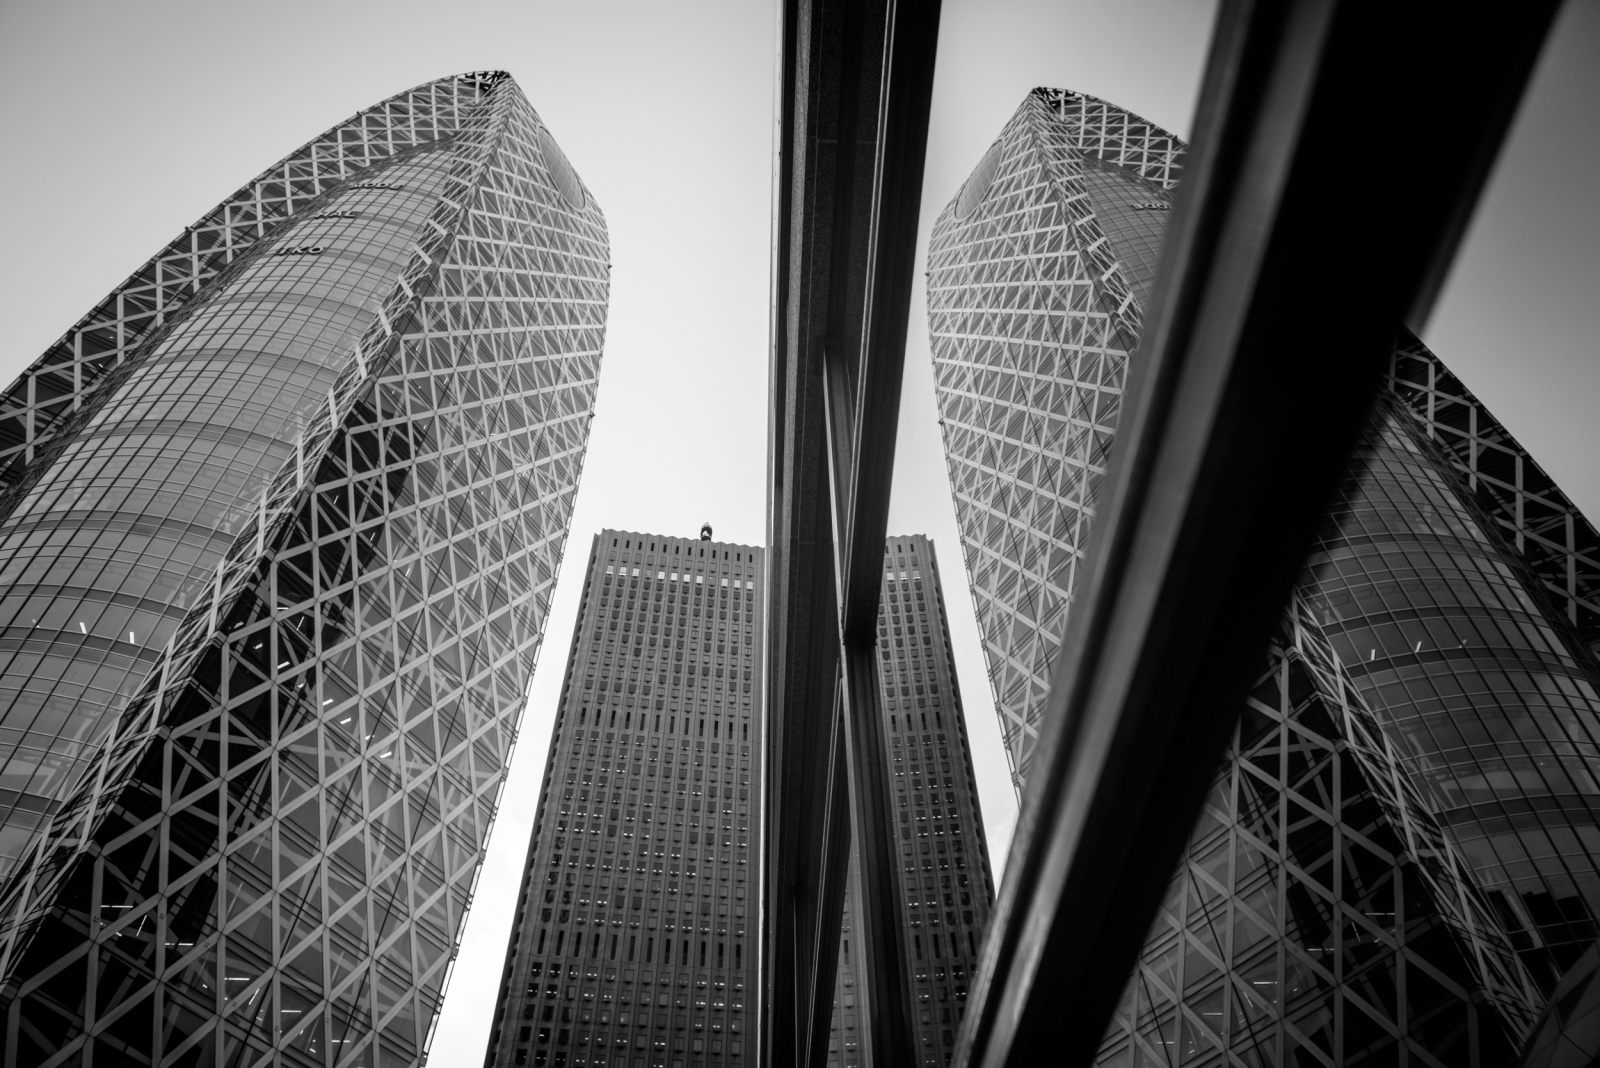 Tokyo 東京  Donato Palumbo©, all rights reserved